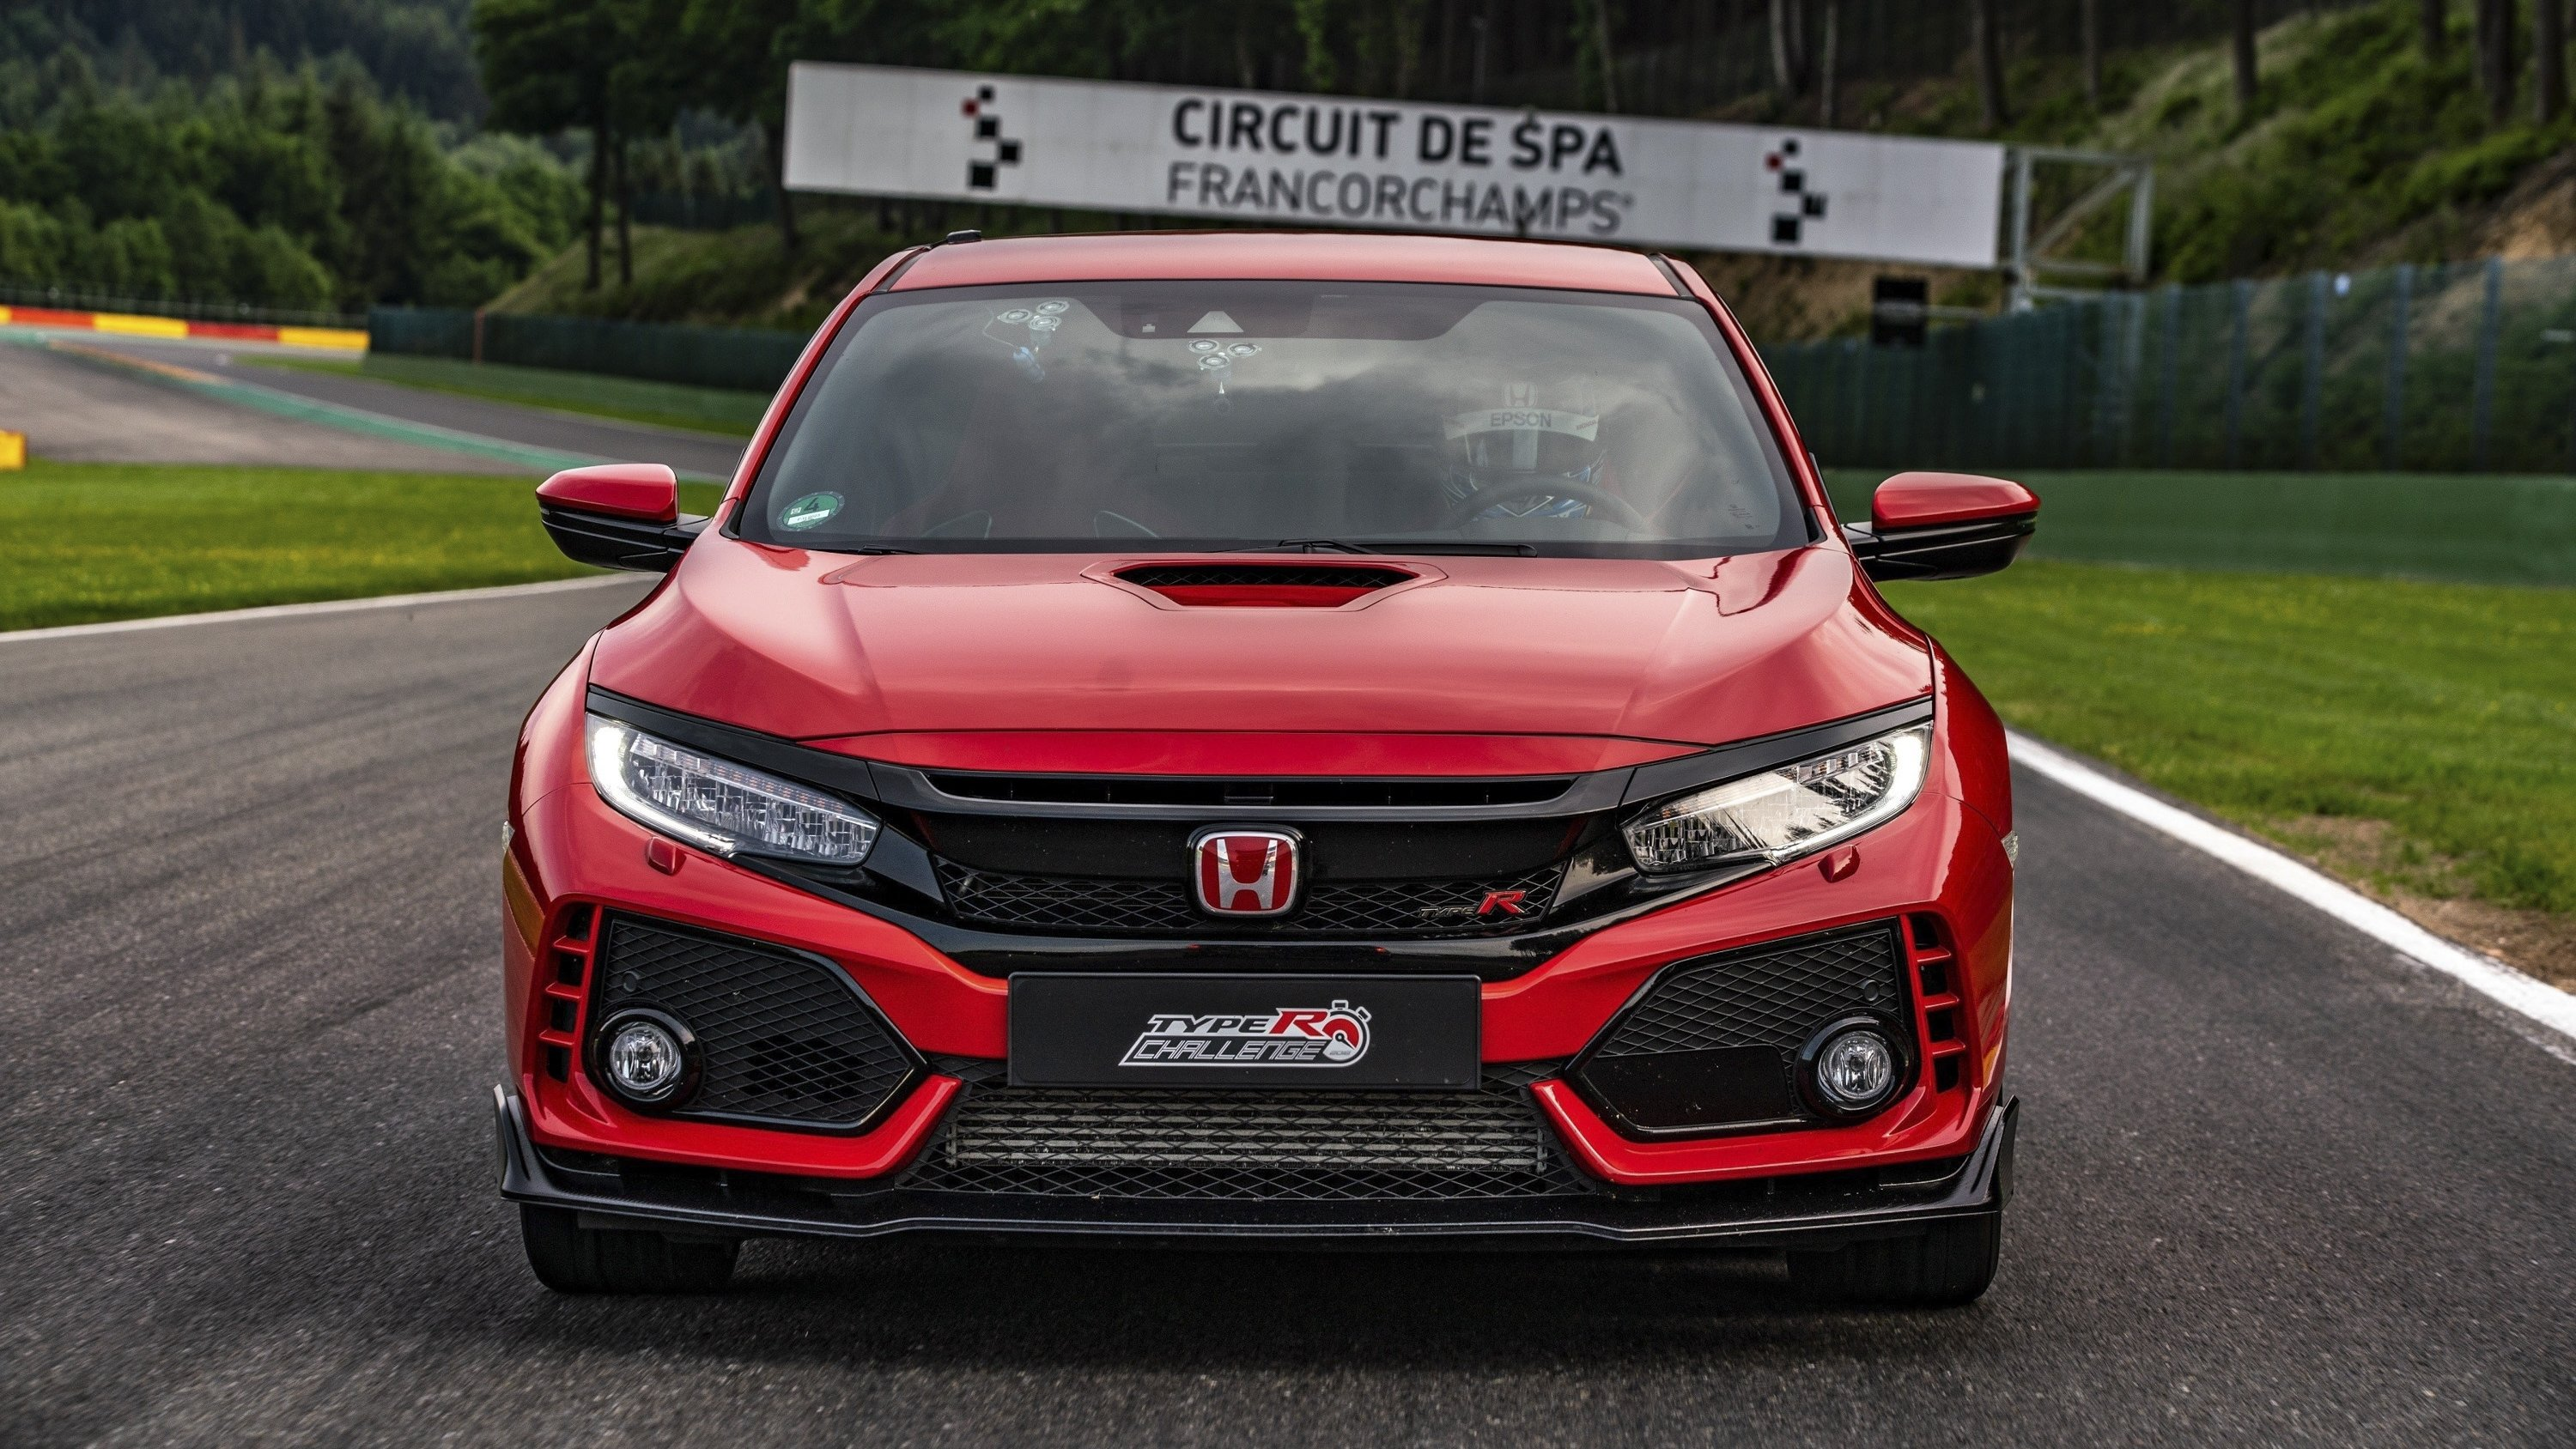 Honda civic type r sets lap record at spa francorchamps for Honda civic type r top speed